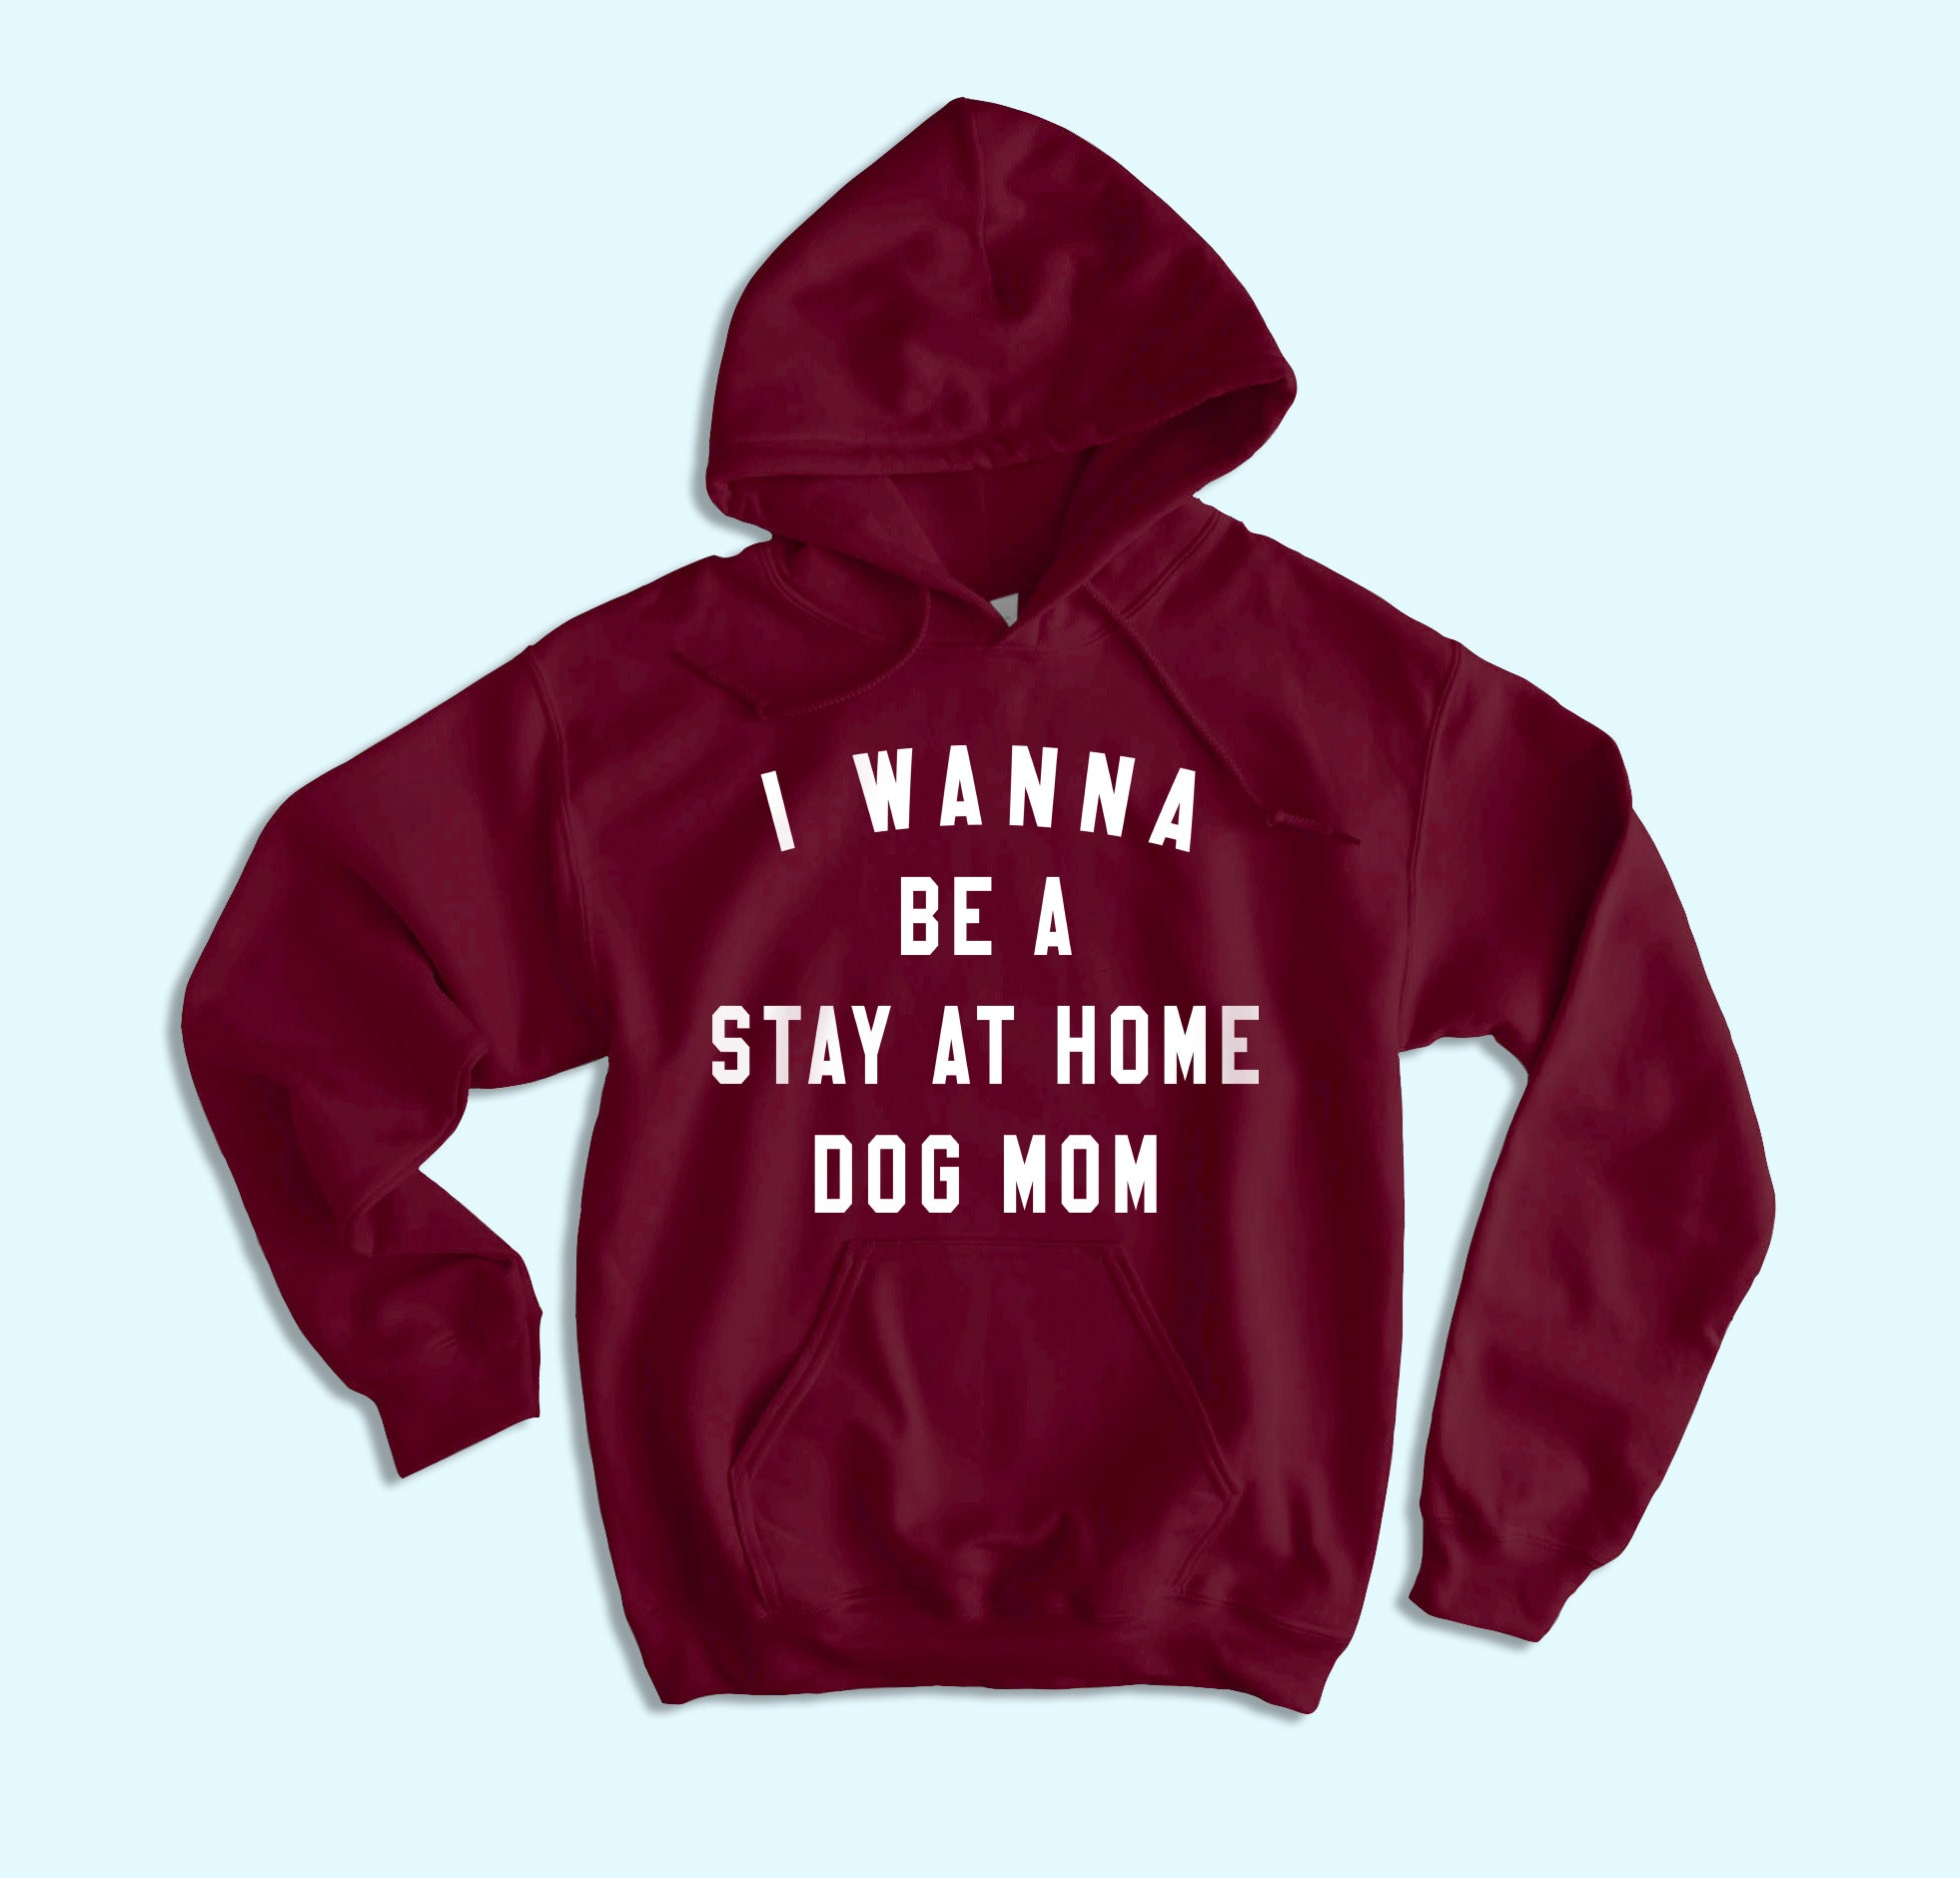 I Wanna Be A Stay At Home Dog Mom Hoodie